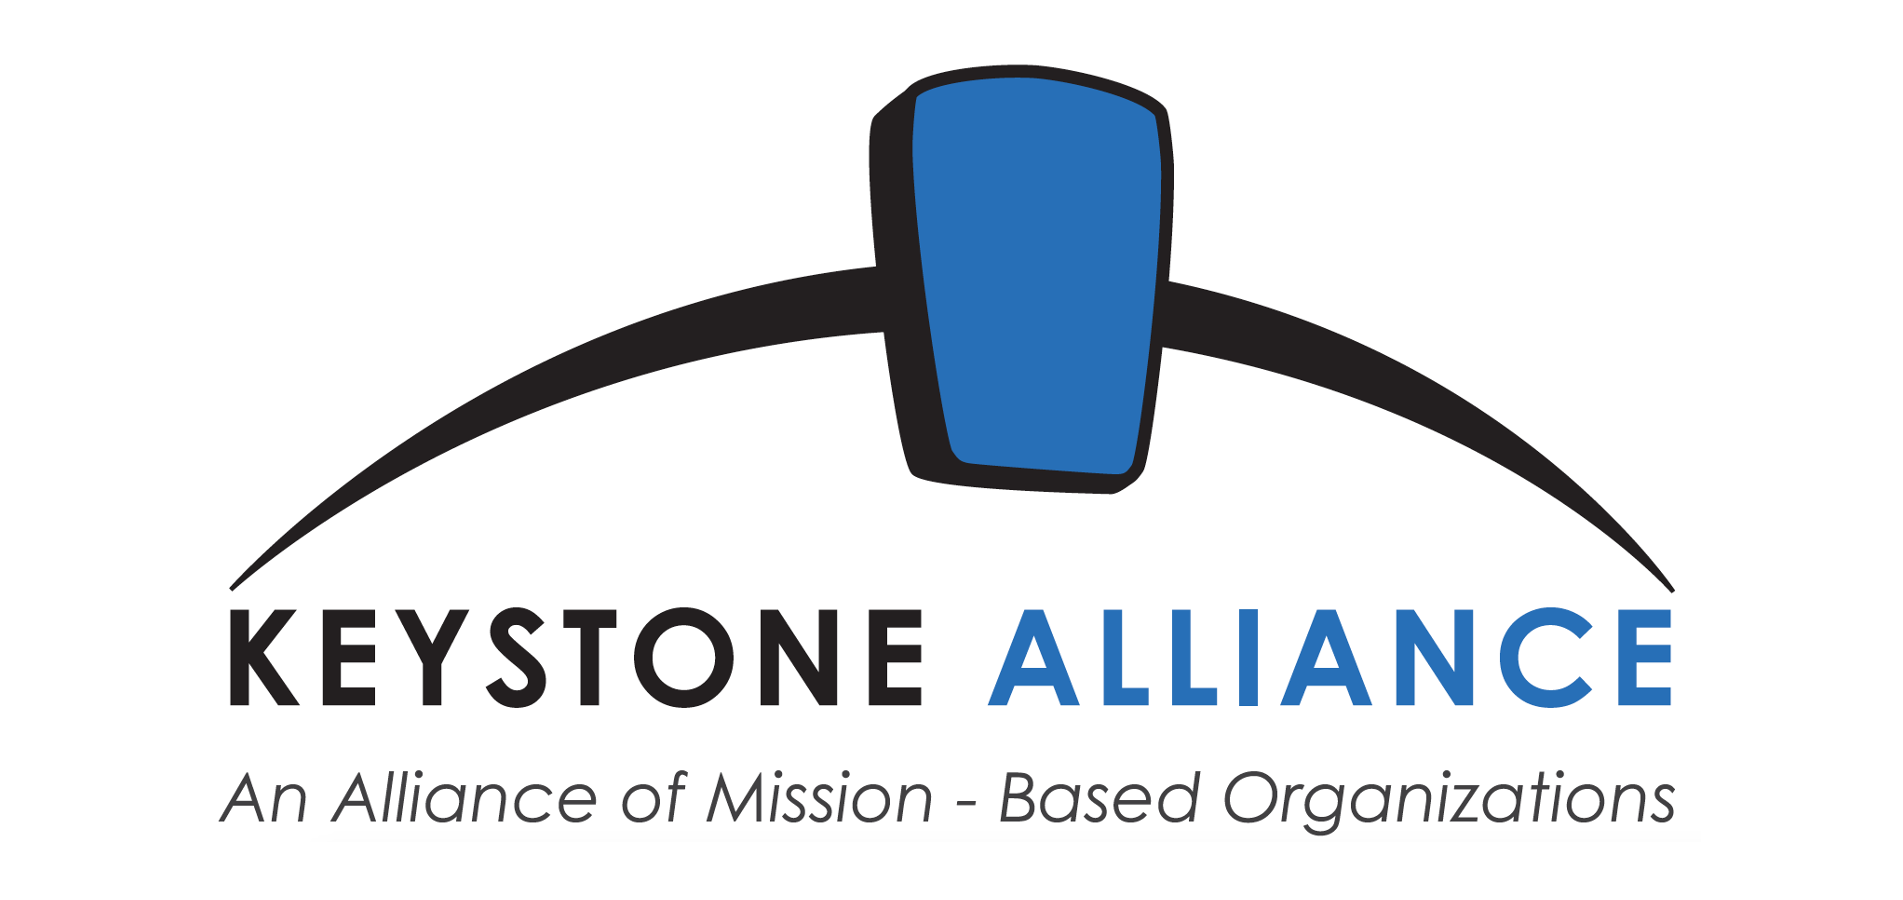 Glenkirk - Our Alliance Header - Keystone Alliance logo